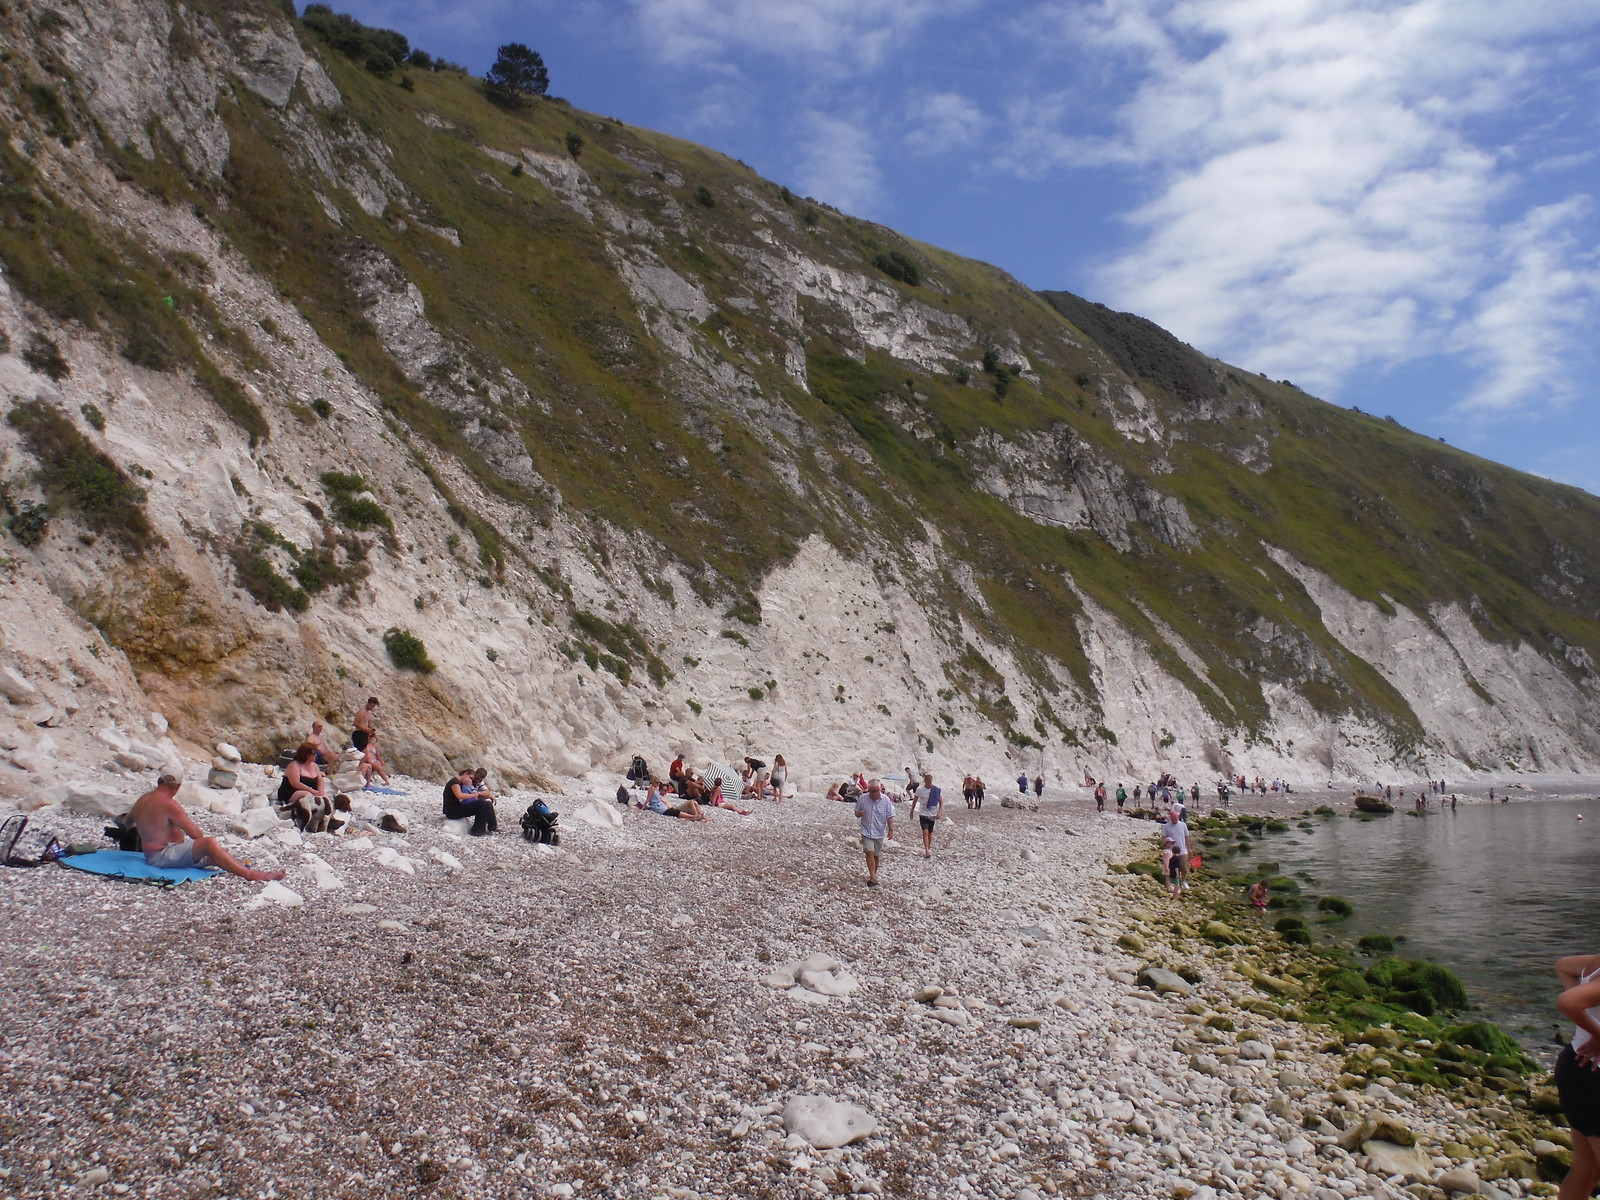 Lulworth Cove Beach SWC Walk 54 - Lulworth Cove Circular (via Tyneham and Durdle Door)